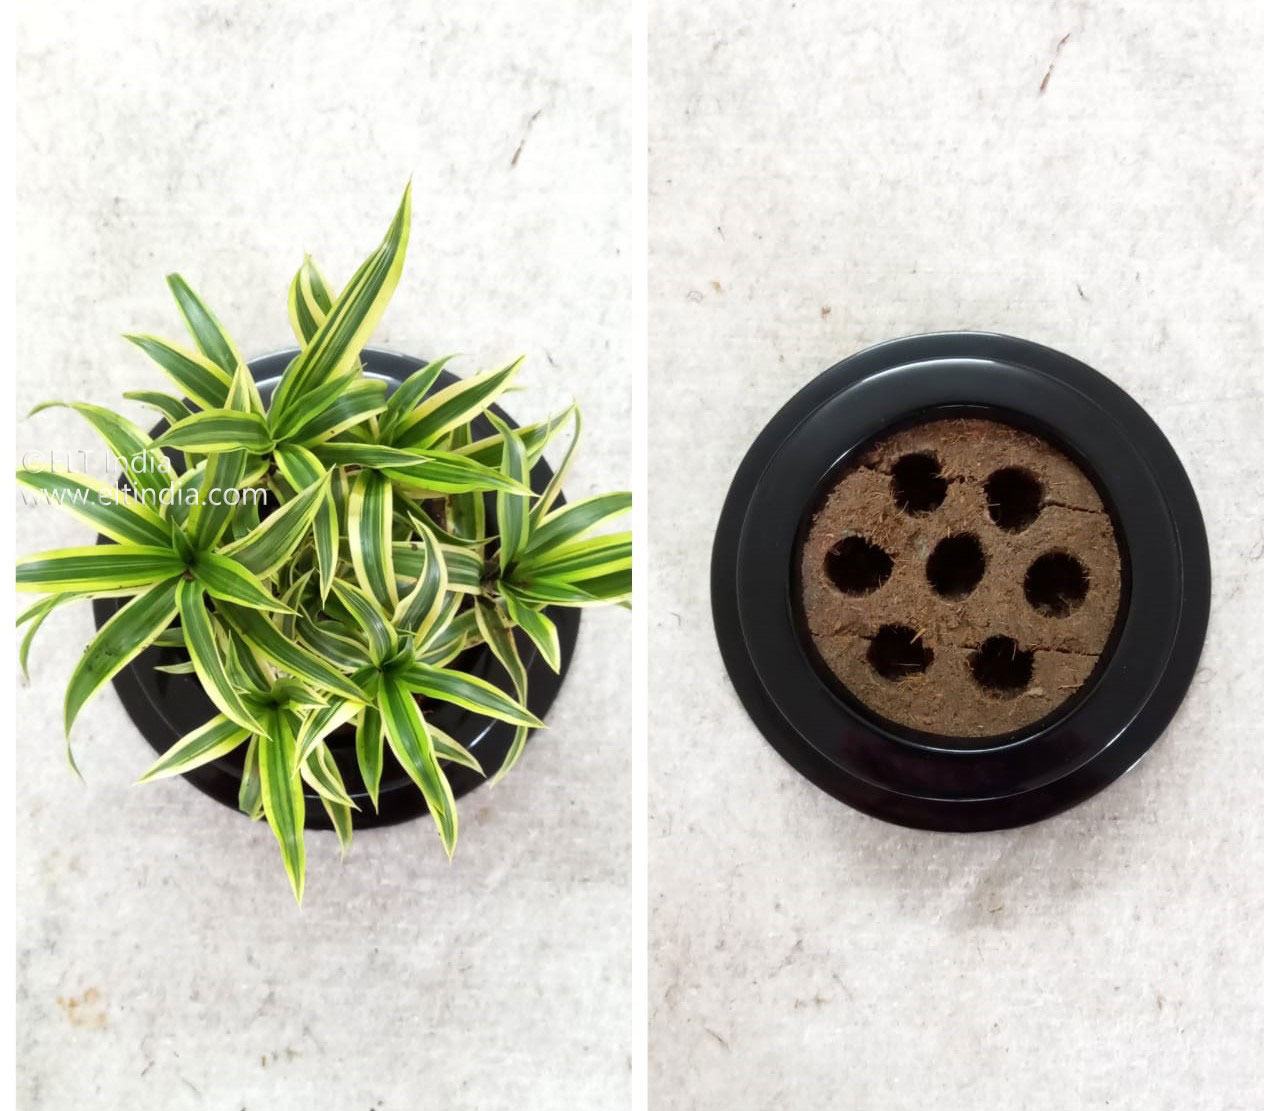 Innovative Gardening Products